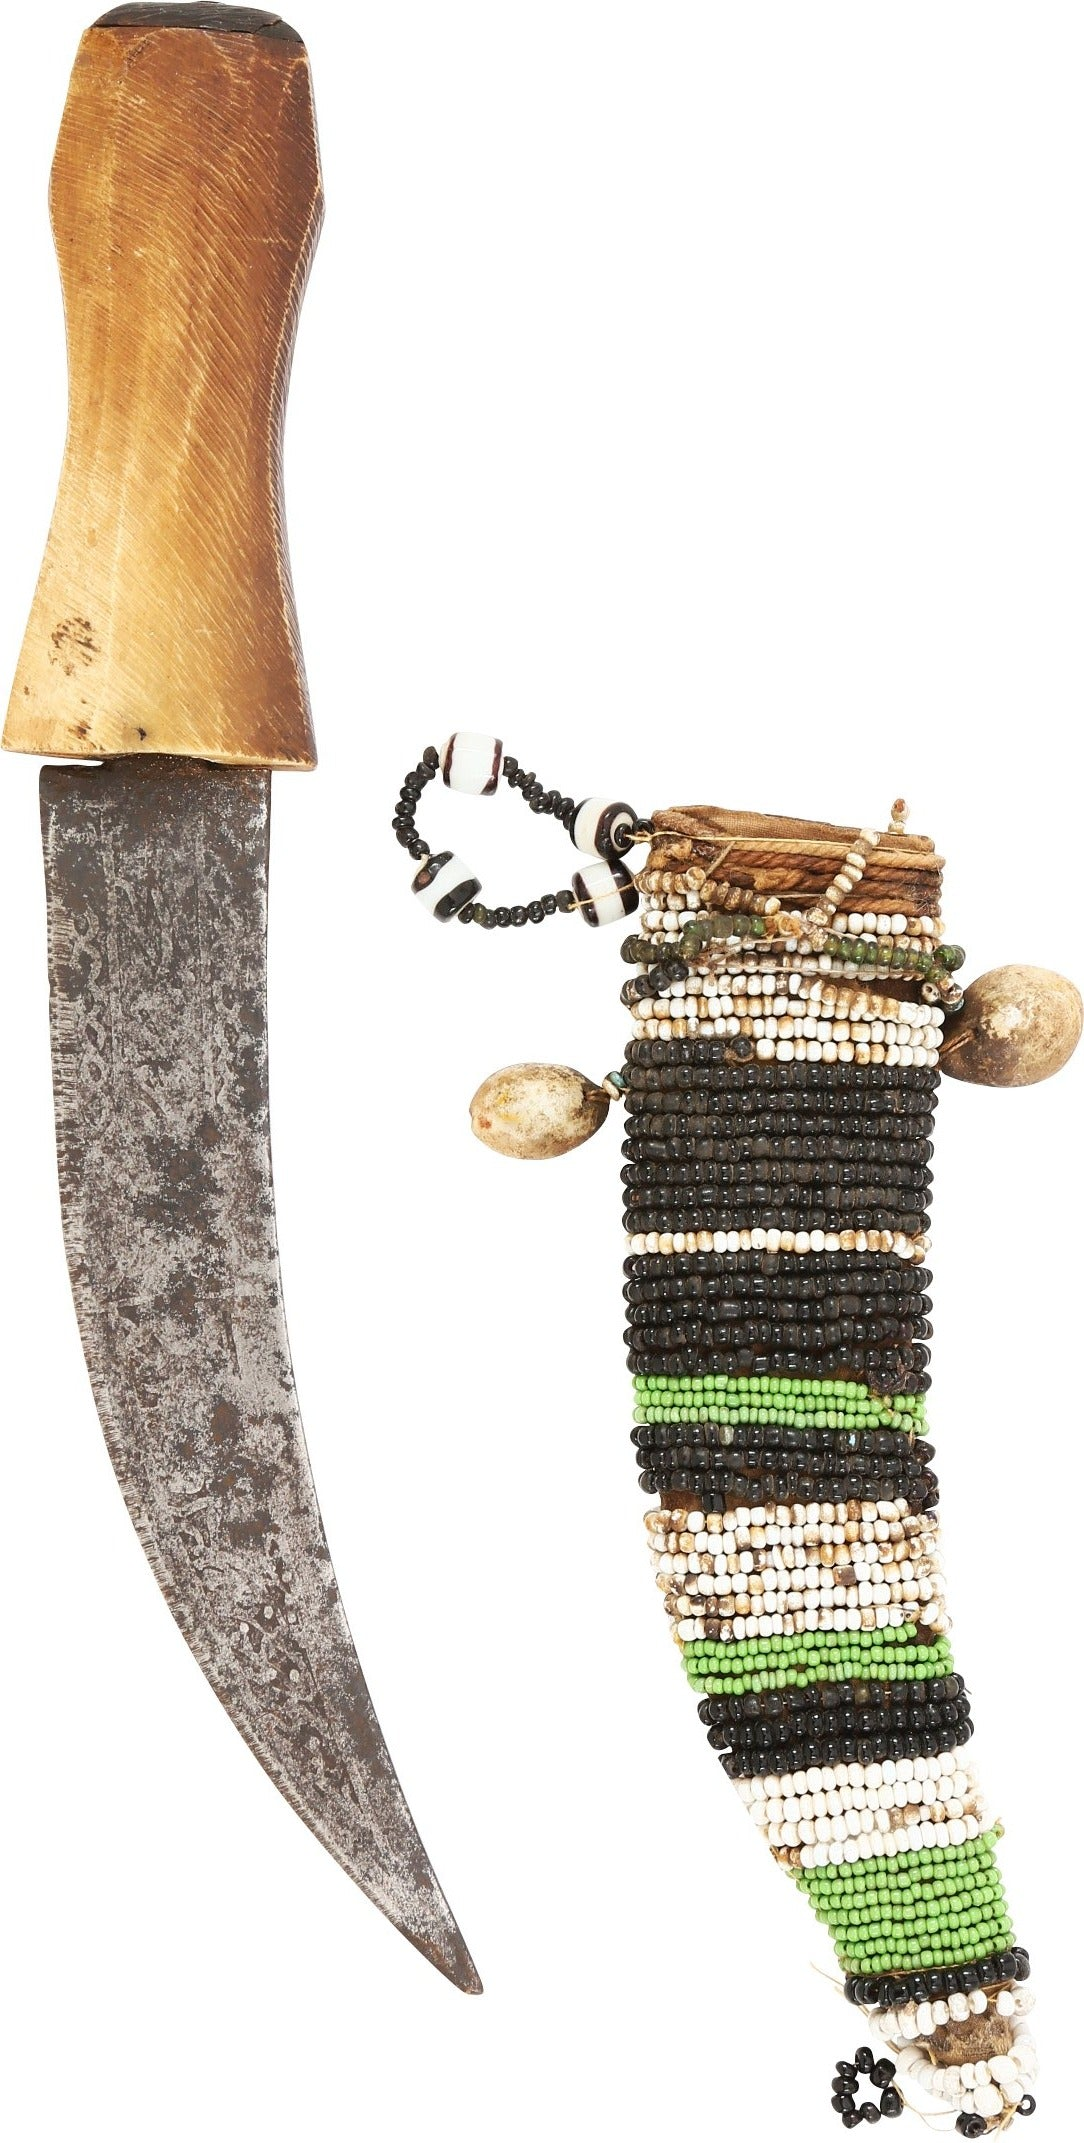 MAHDIST BEADED SHEATH DAGGER C.1885